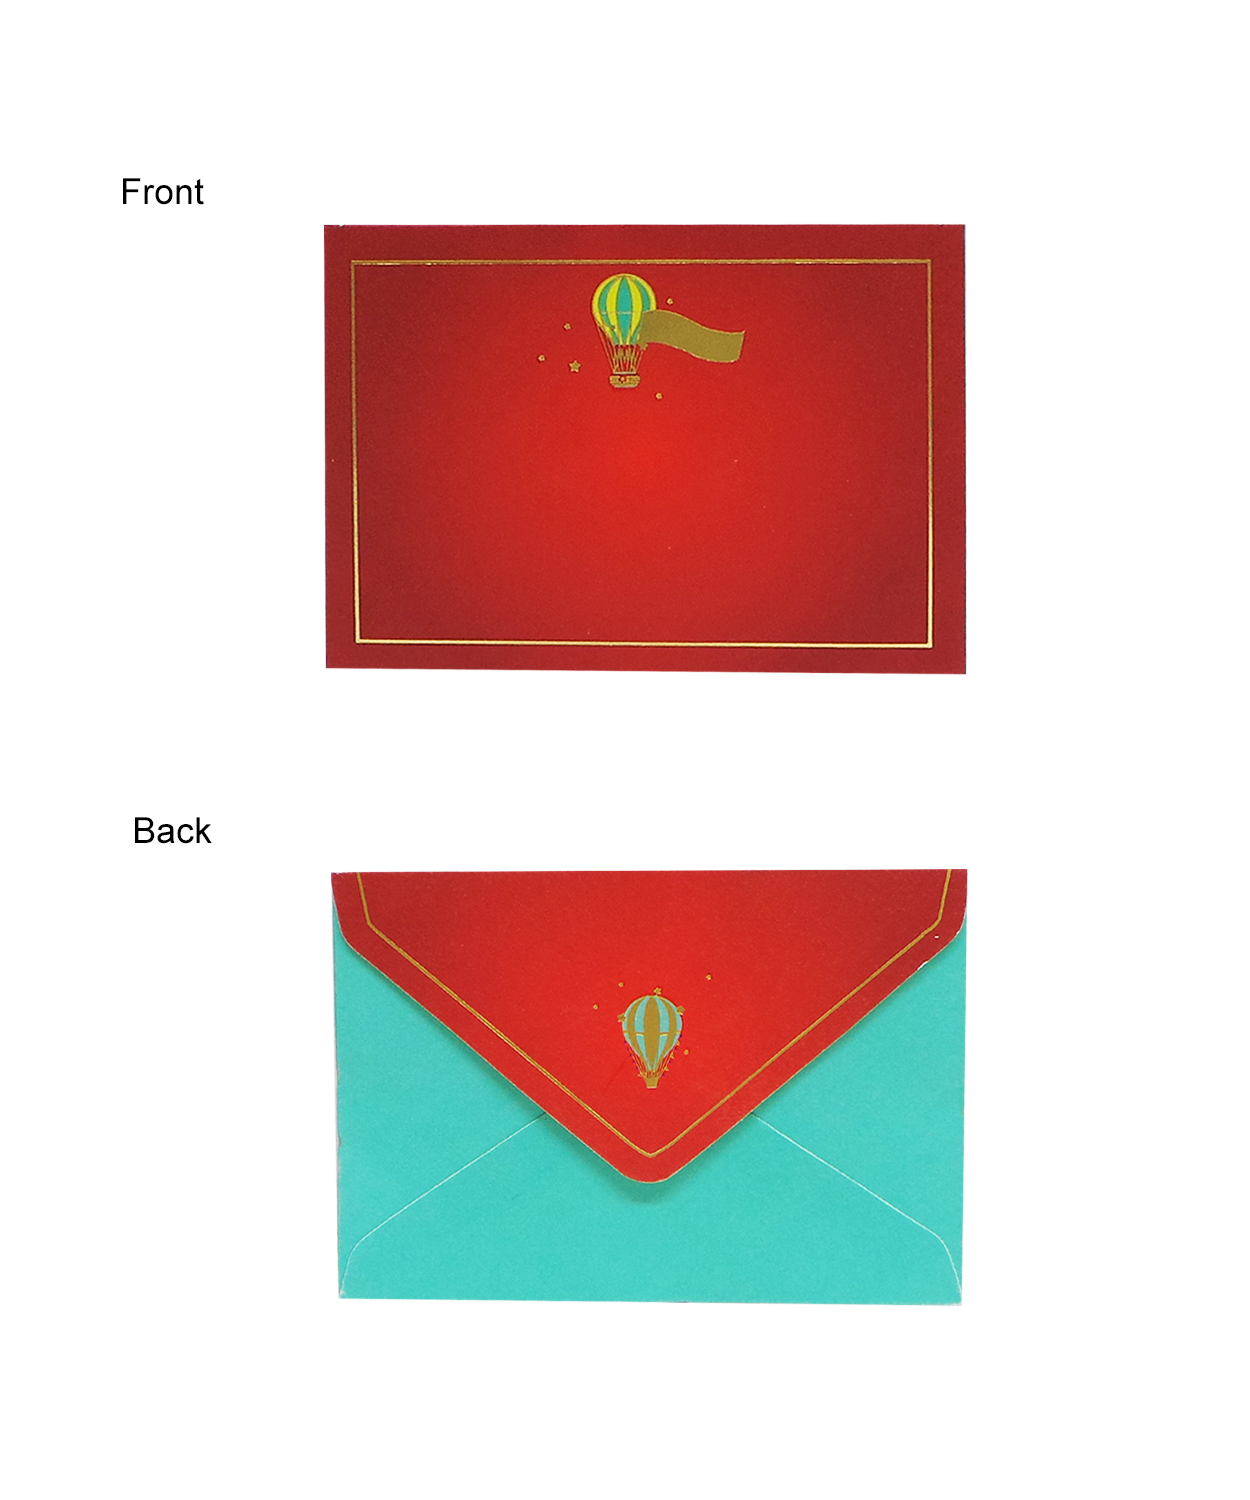 Parachute Thank You Card With Envelope - Buy Parachute ...